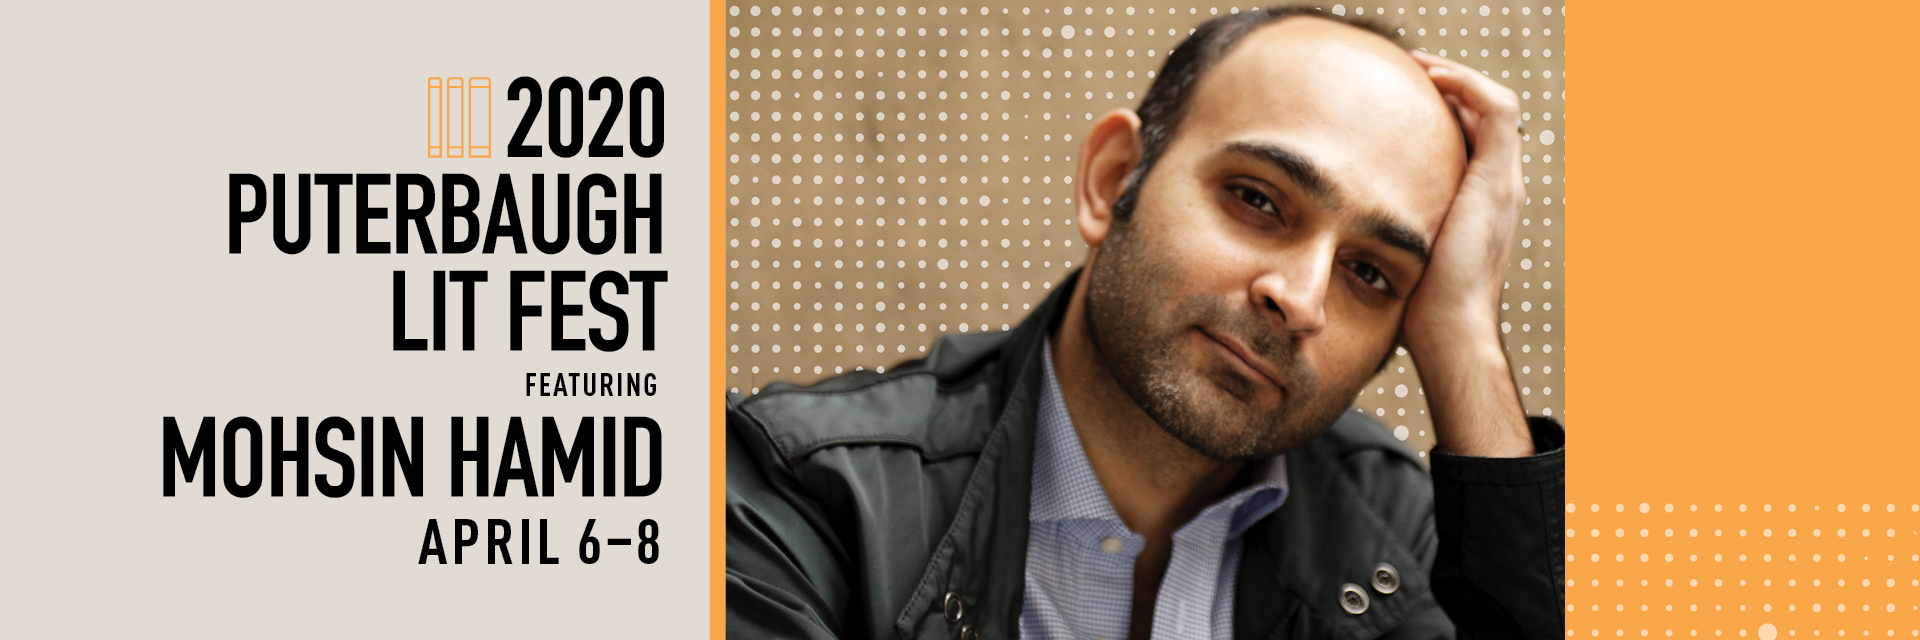 2020 Puterbaugh Fellow Mohsin Hamid